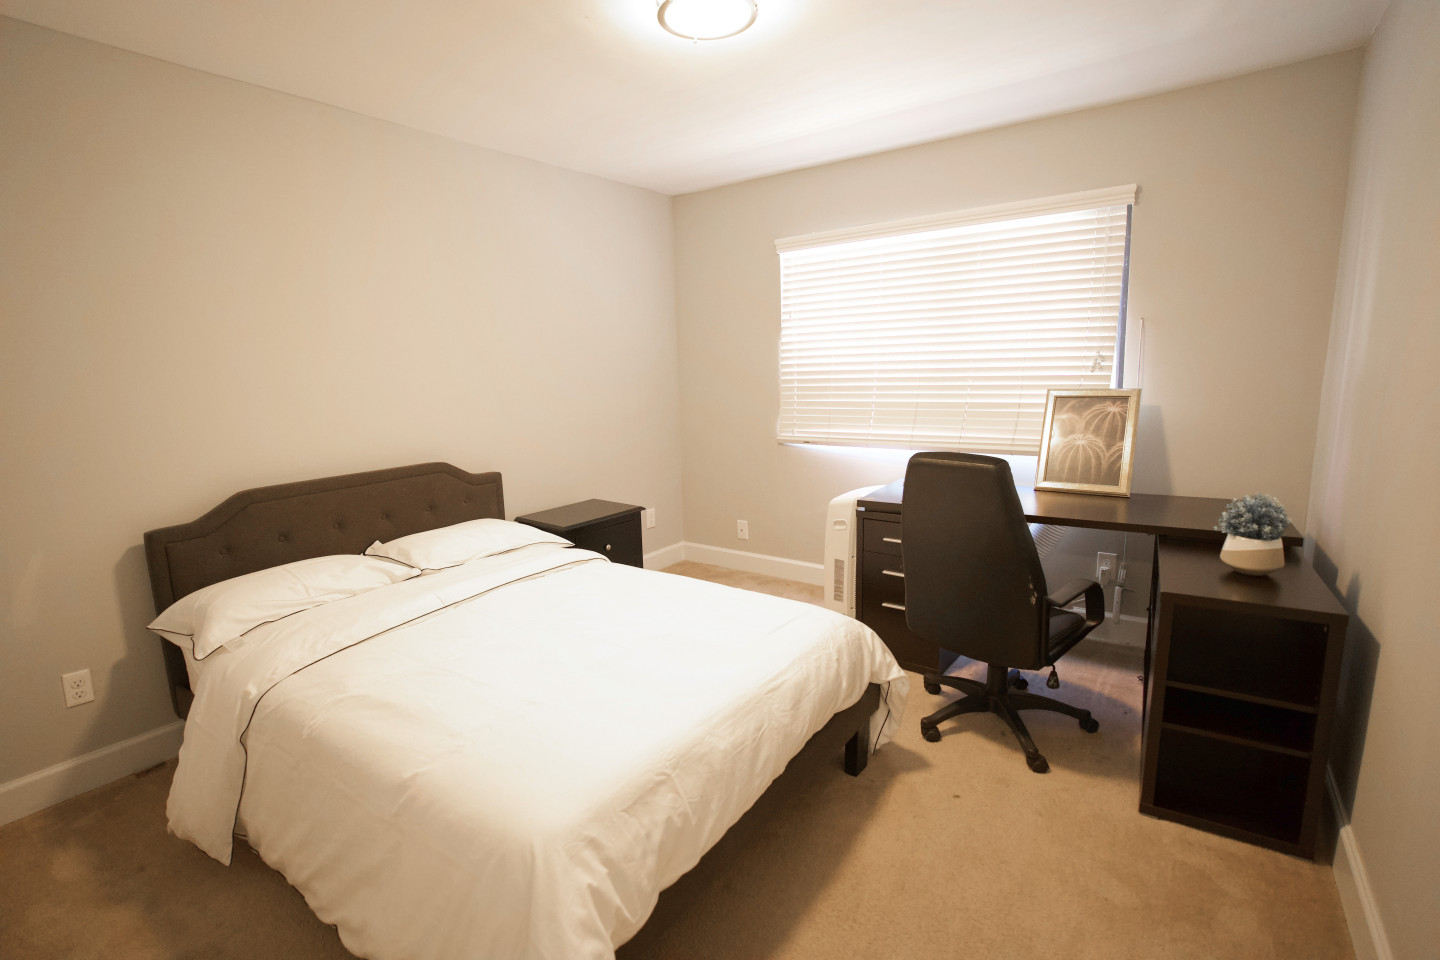 private bedroom furnished with black desk, chair and bed